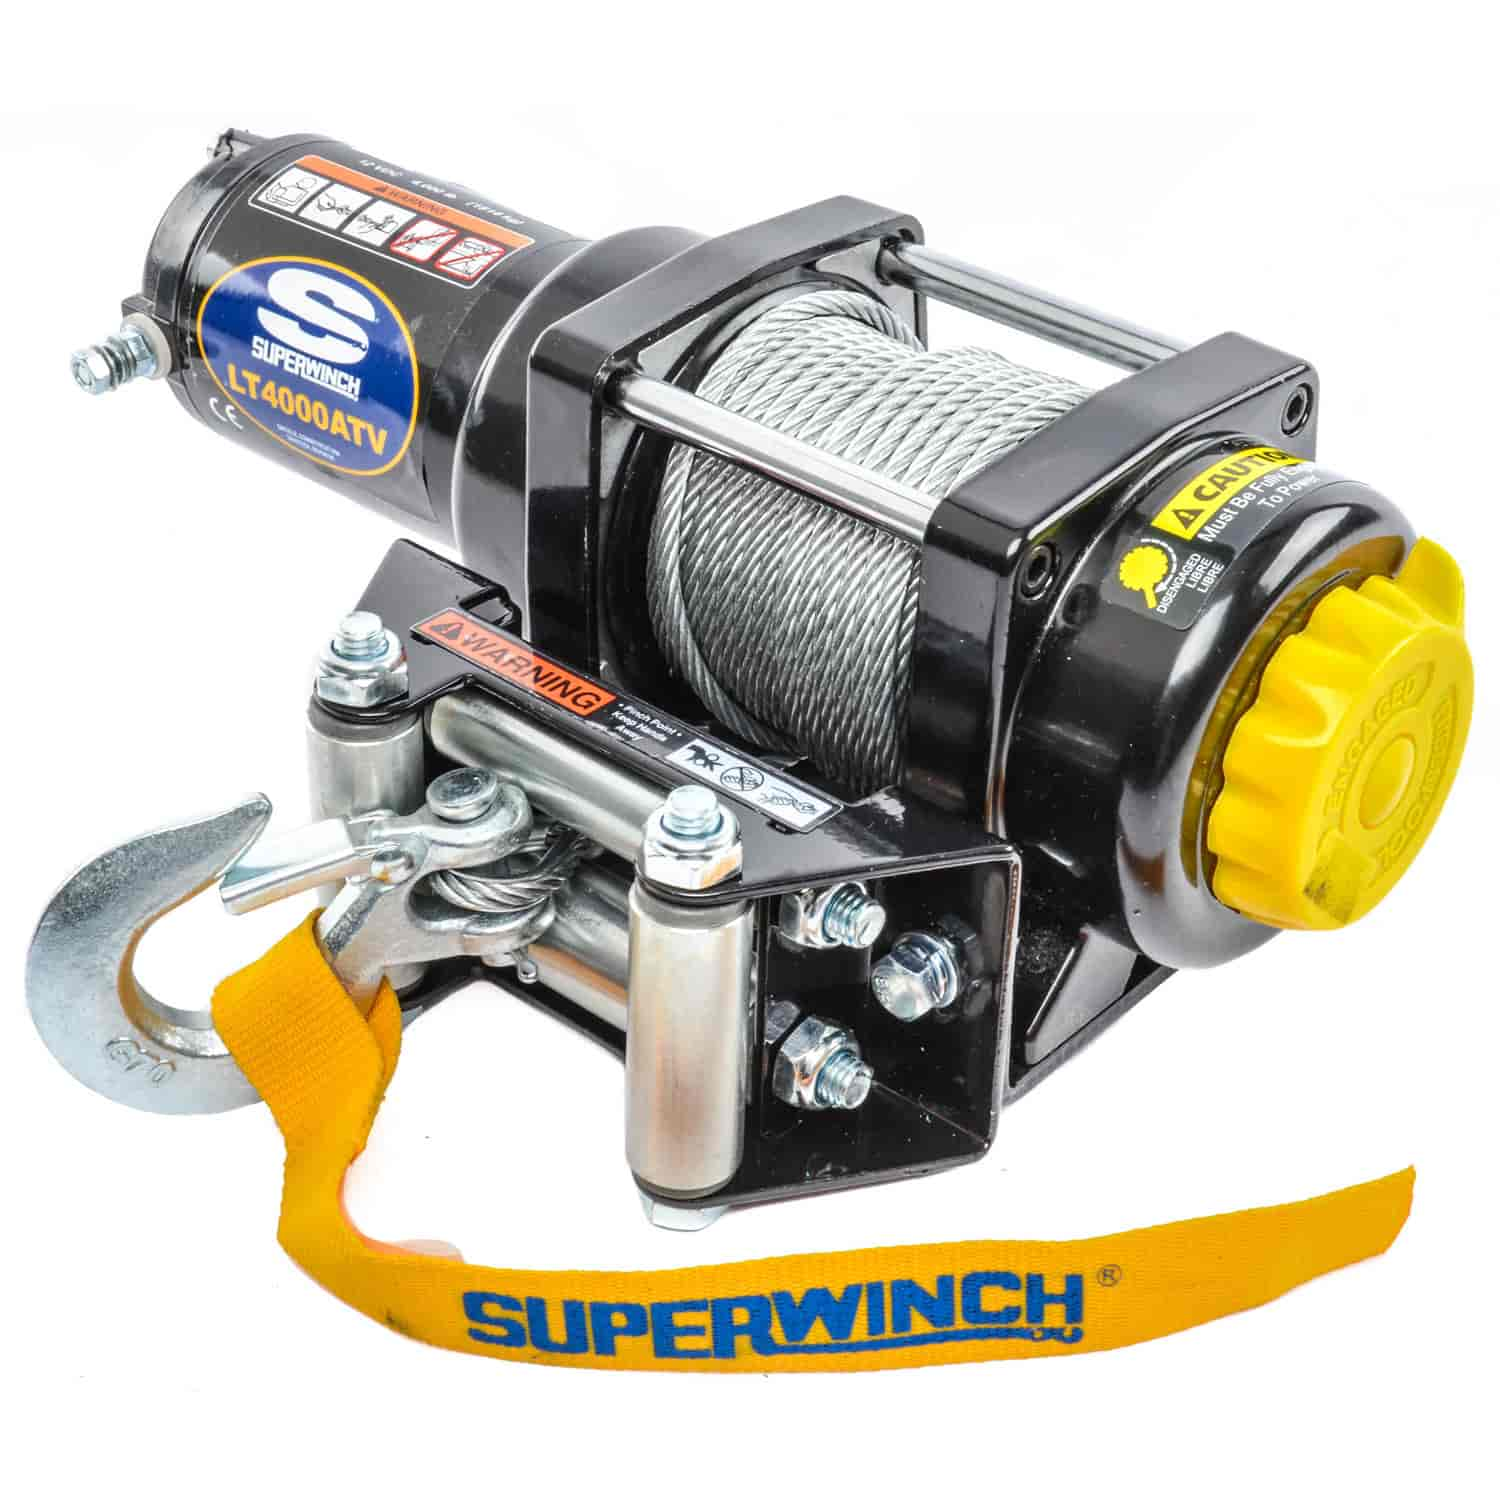 Superwinch 1140220